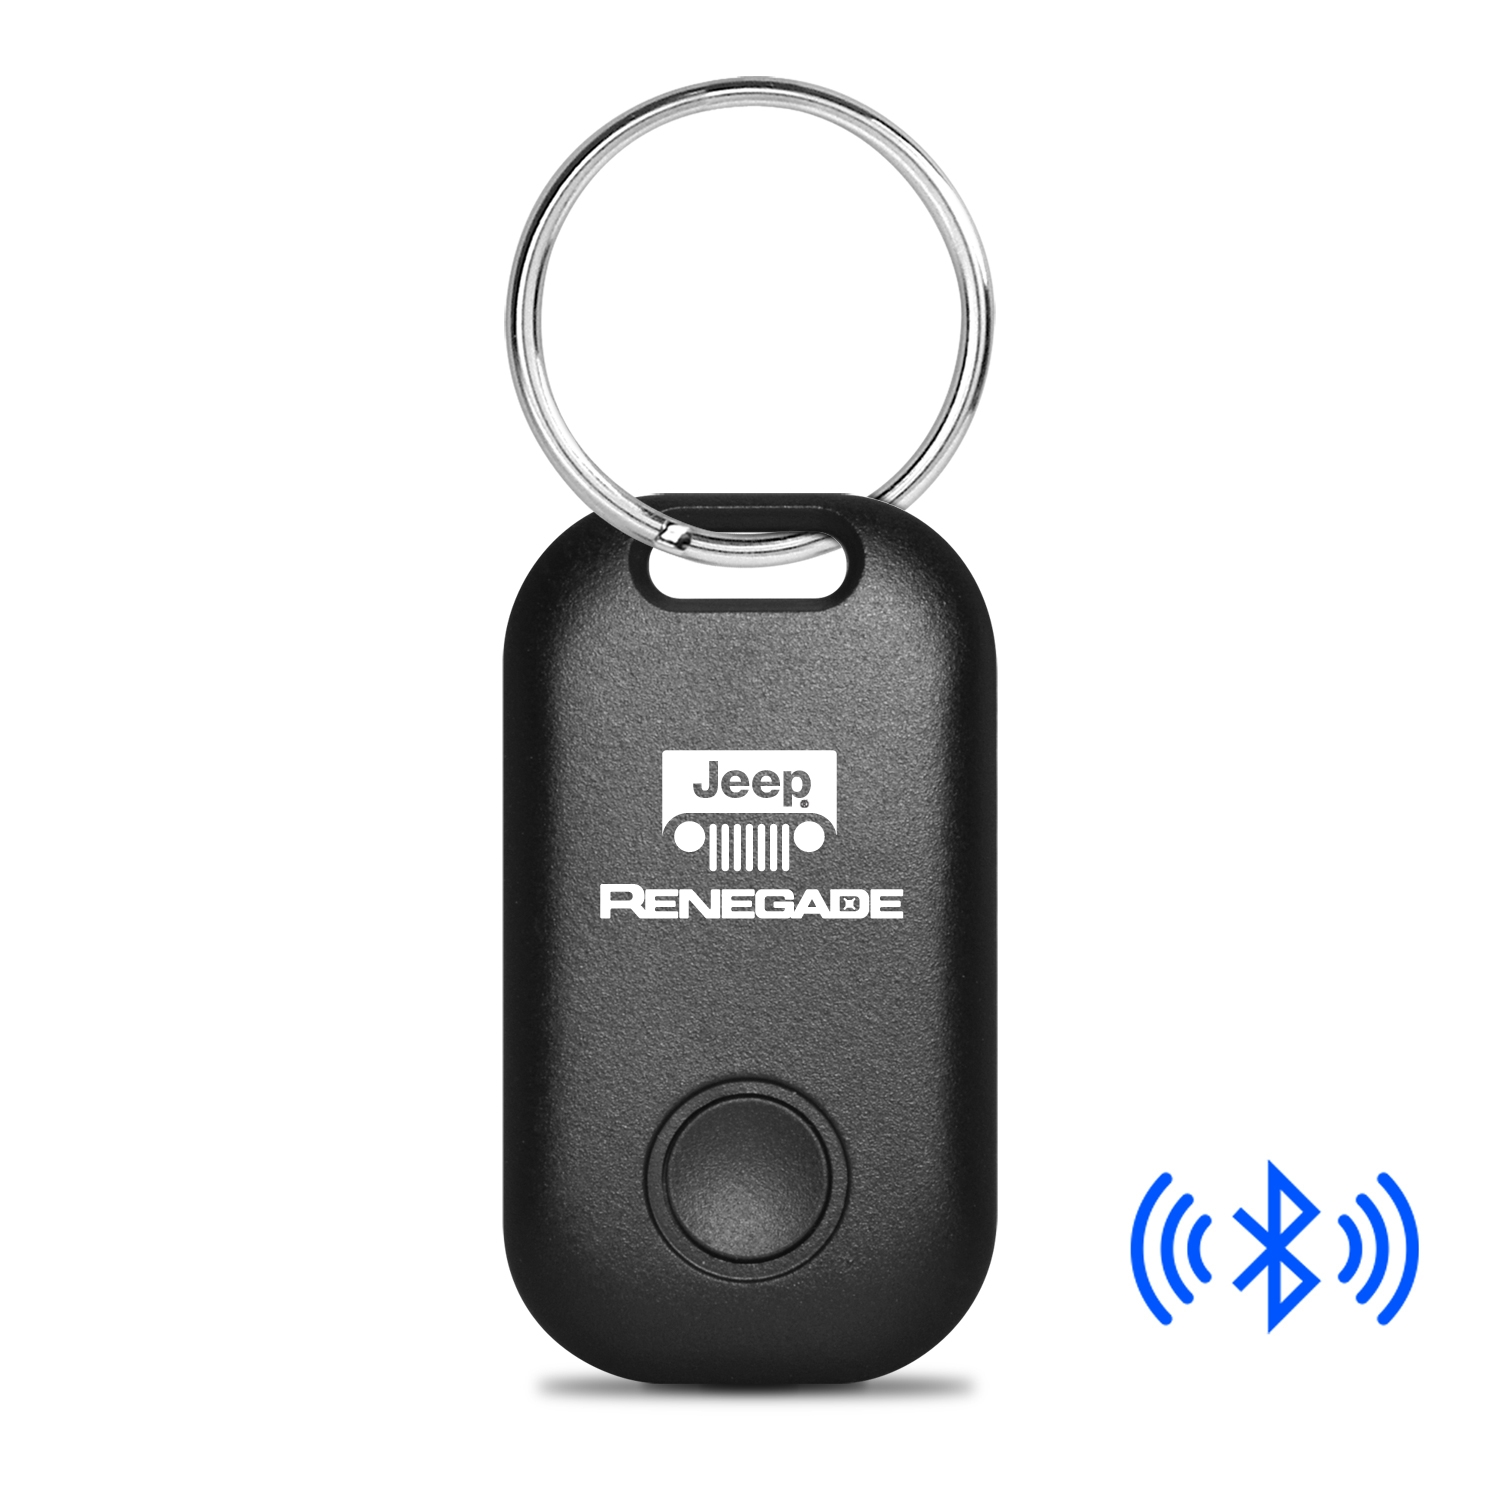 Jeep Renegade Bluetooth Smart Key Finder Black Key Chain